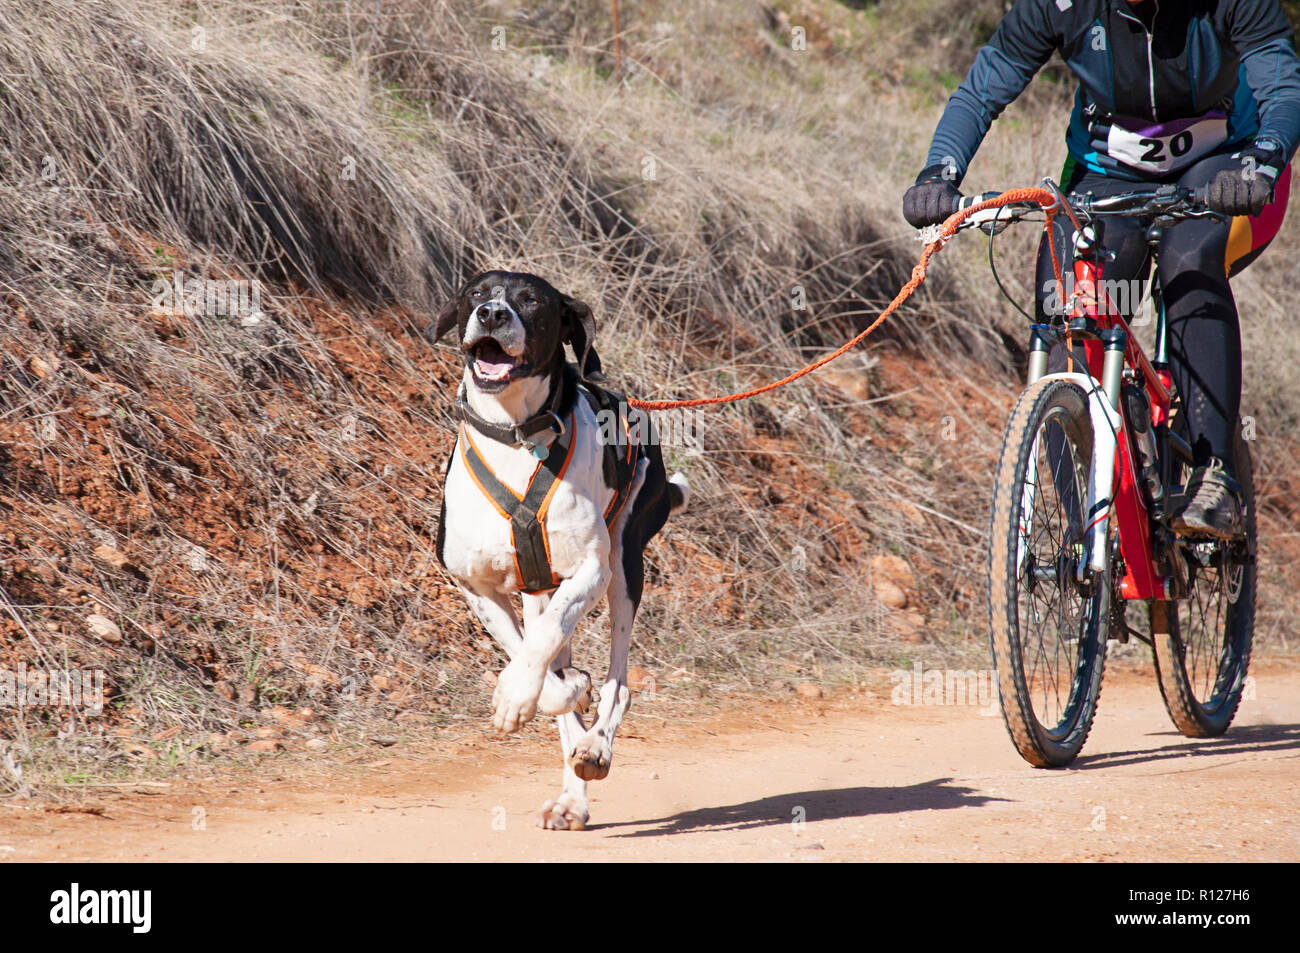 A dog and its musher taking part in a popular canicross with bicycle (bikejoring) - Stock Image